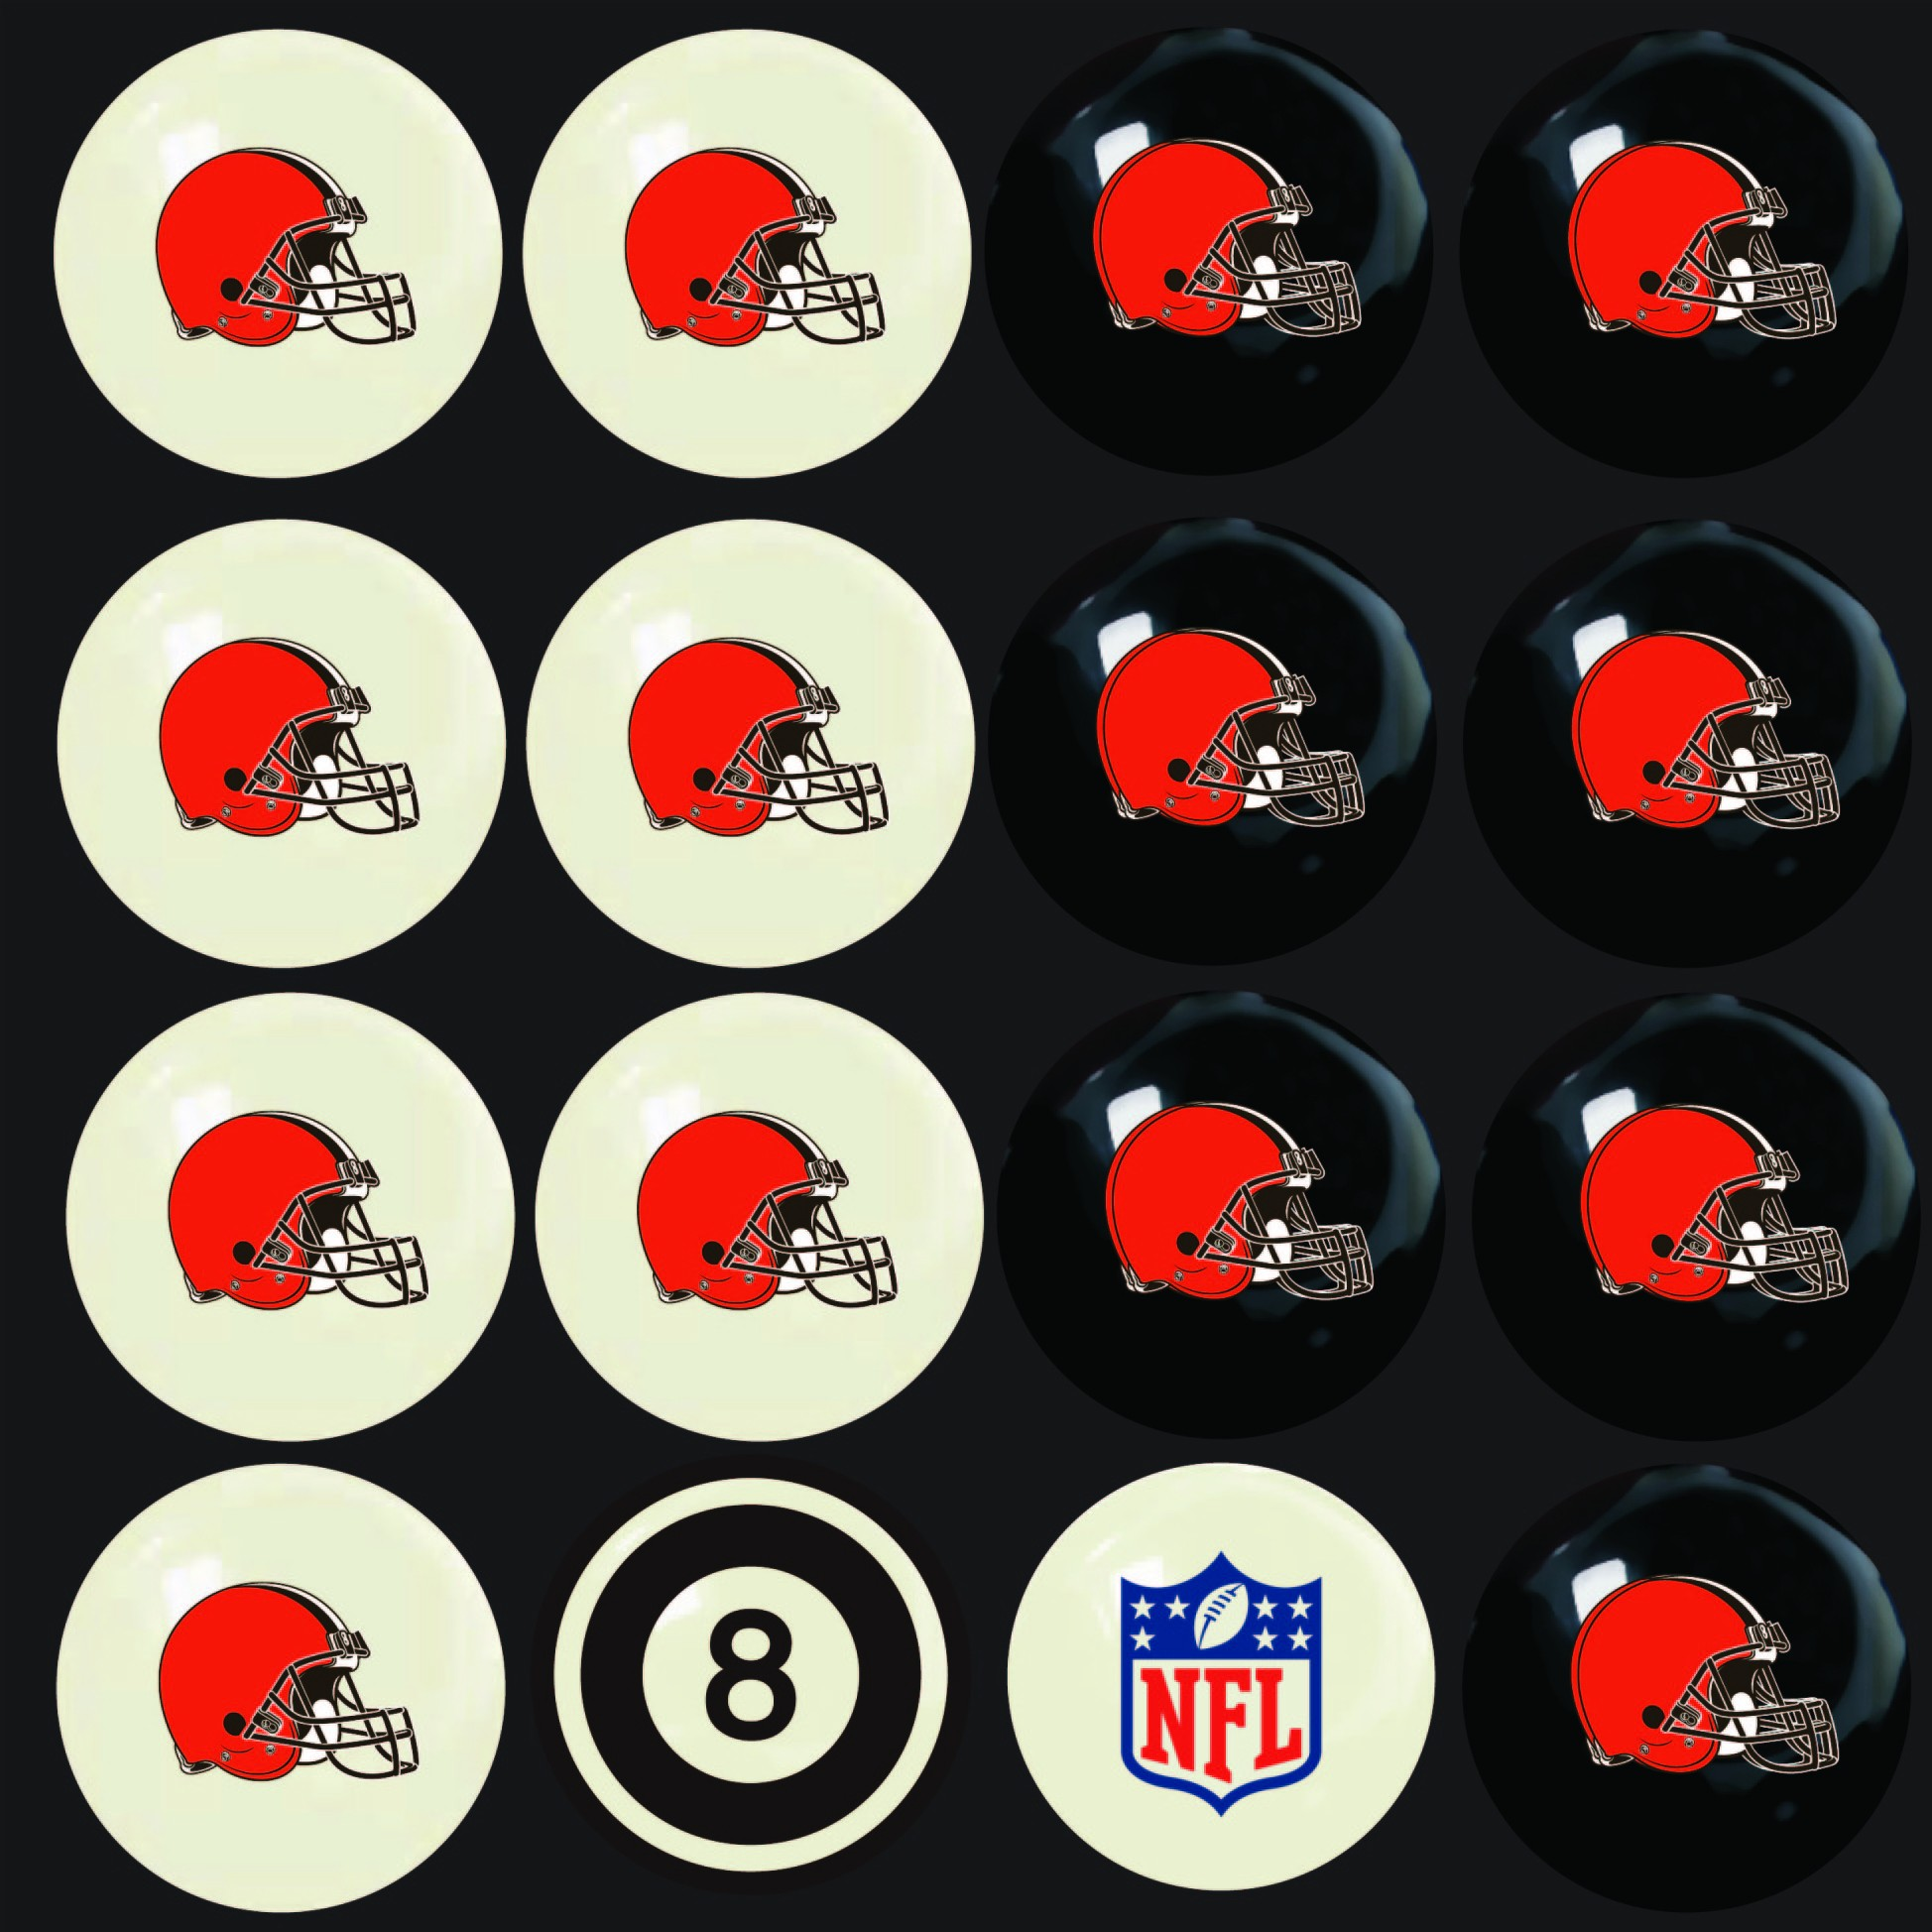 CLEVELAND BROWNS HOME VS. AWAY BILLIARD BALL SET